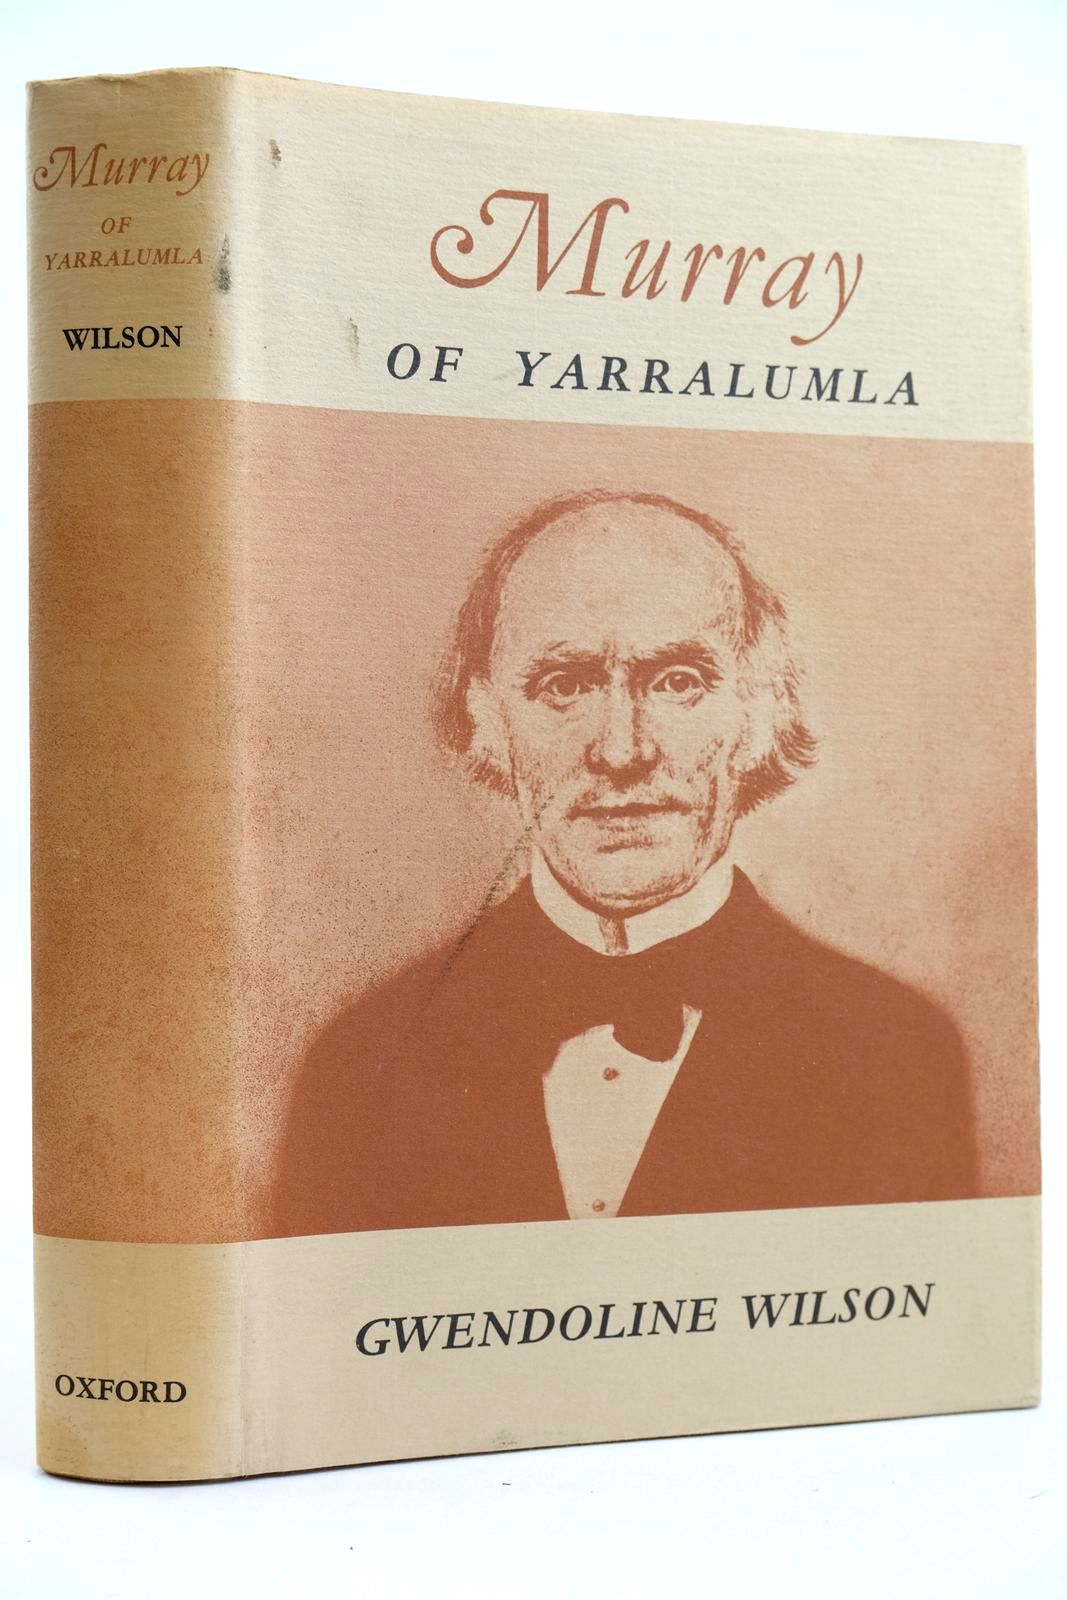 Photo of MURRAY OF YARRALUMLA written by Wilson, Gwendoline published by Oxford University Press (STOCK CODE: 2132510)  for sale by Stella & Rose's Books